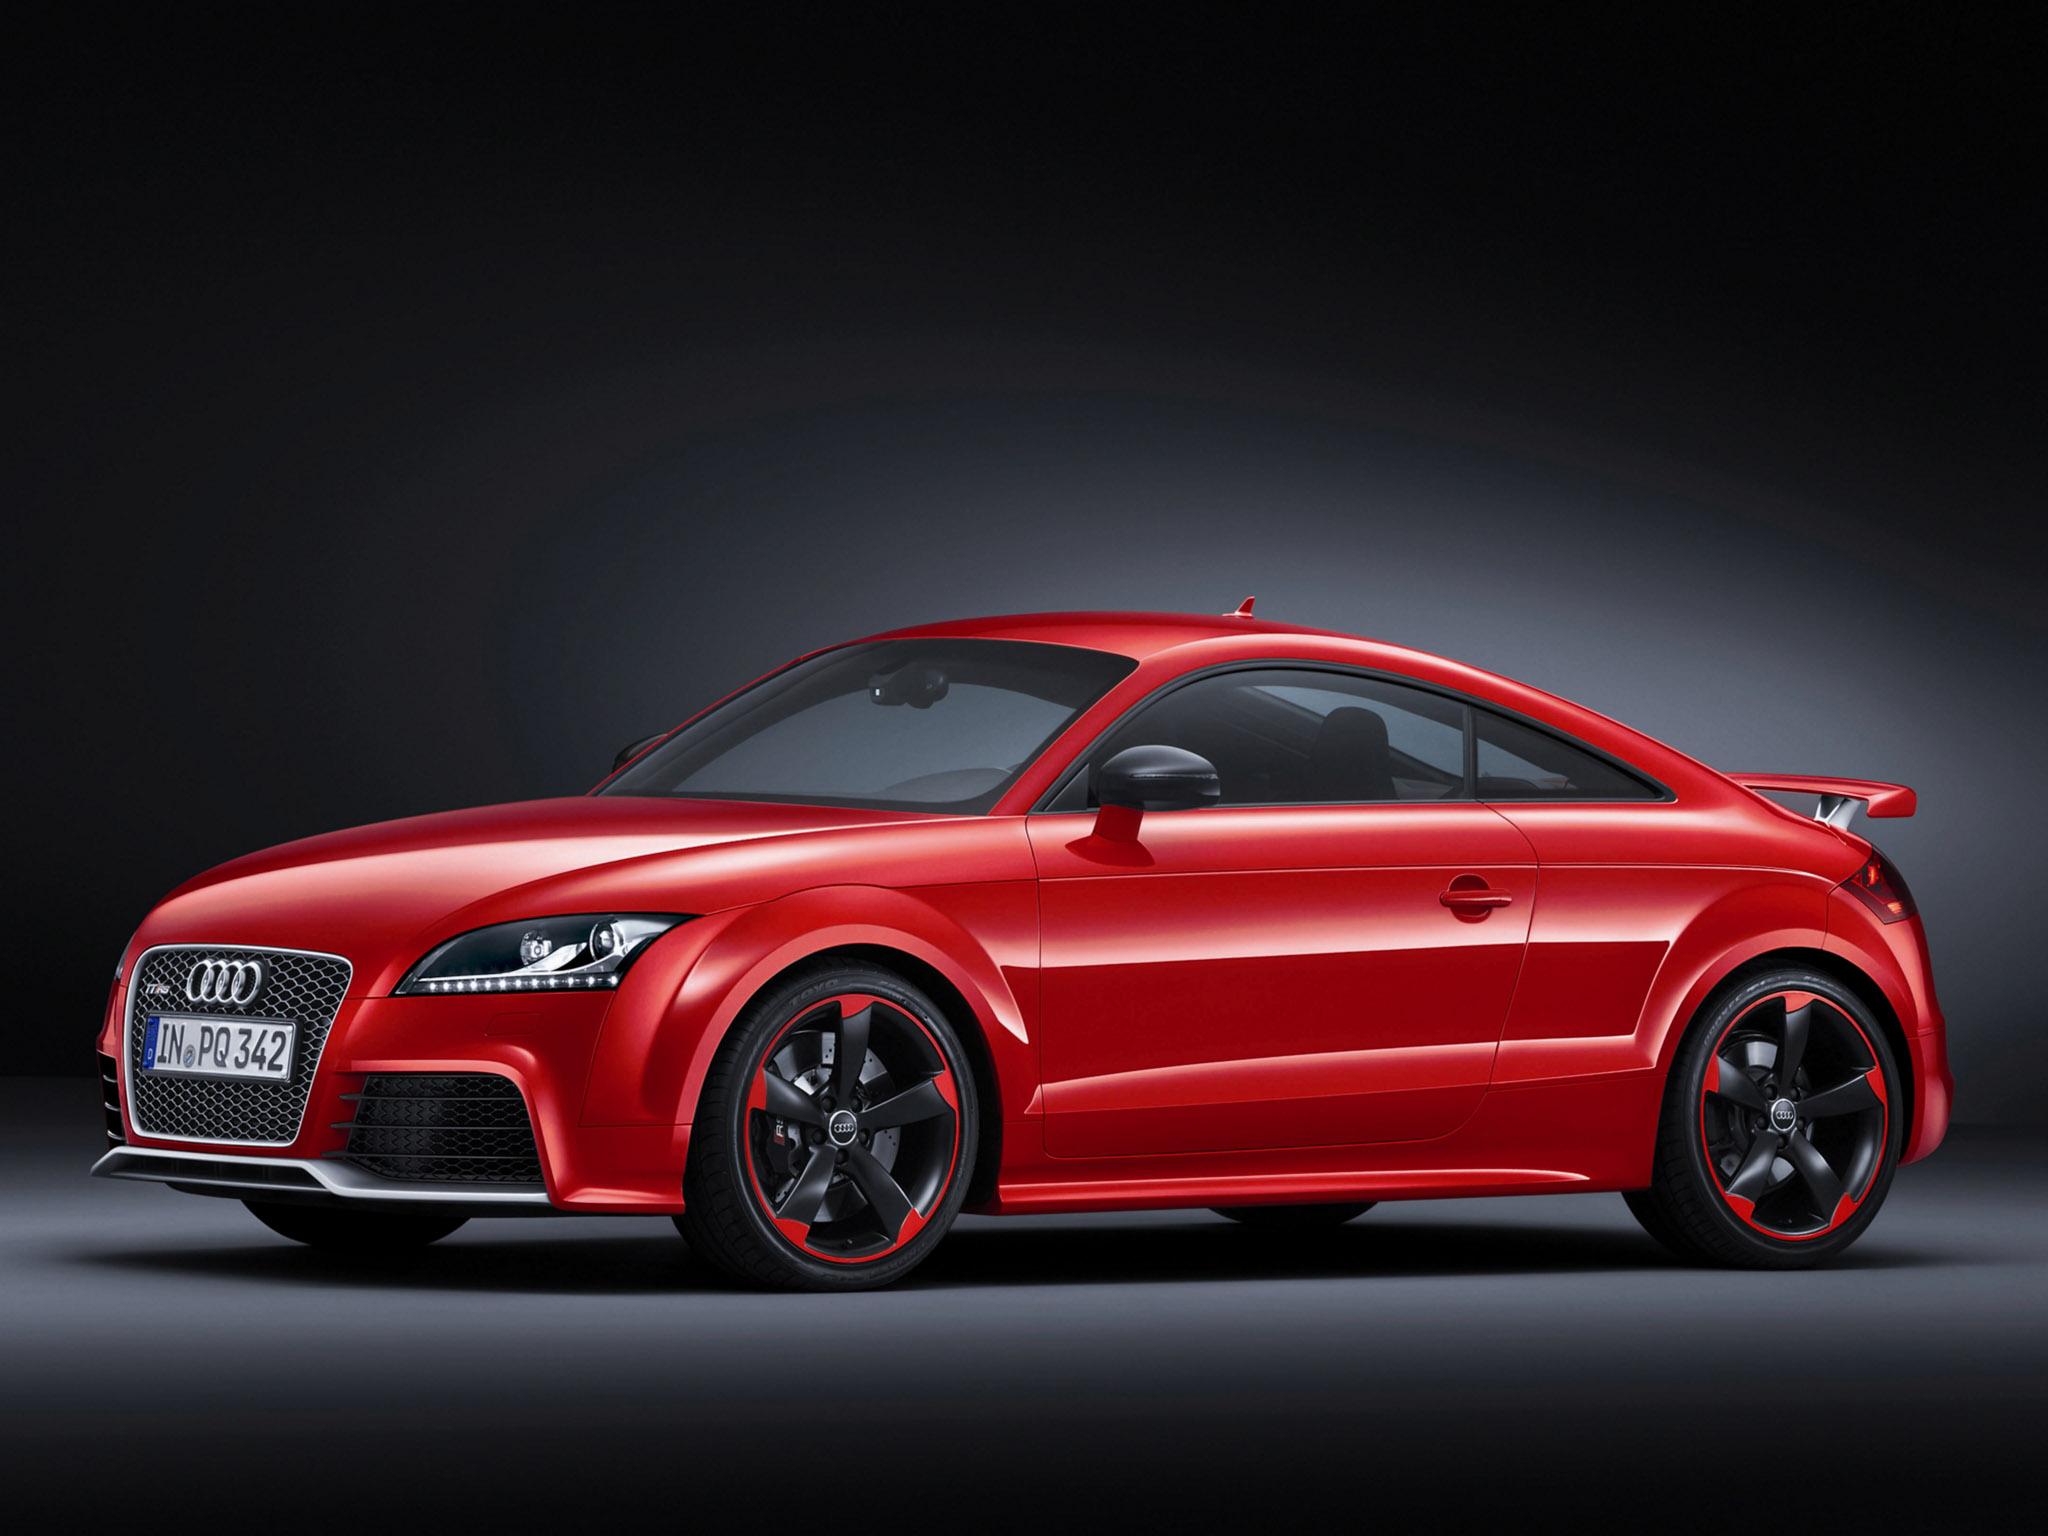 audi tt rs plus 2012 audi tt rs plus 2012 photo 05 car in pictures car photo gallery. Black Bedroom Furniture Sets. Home Design Ideas